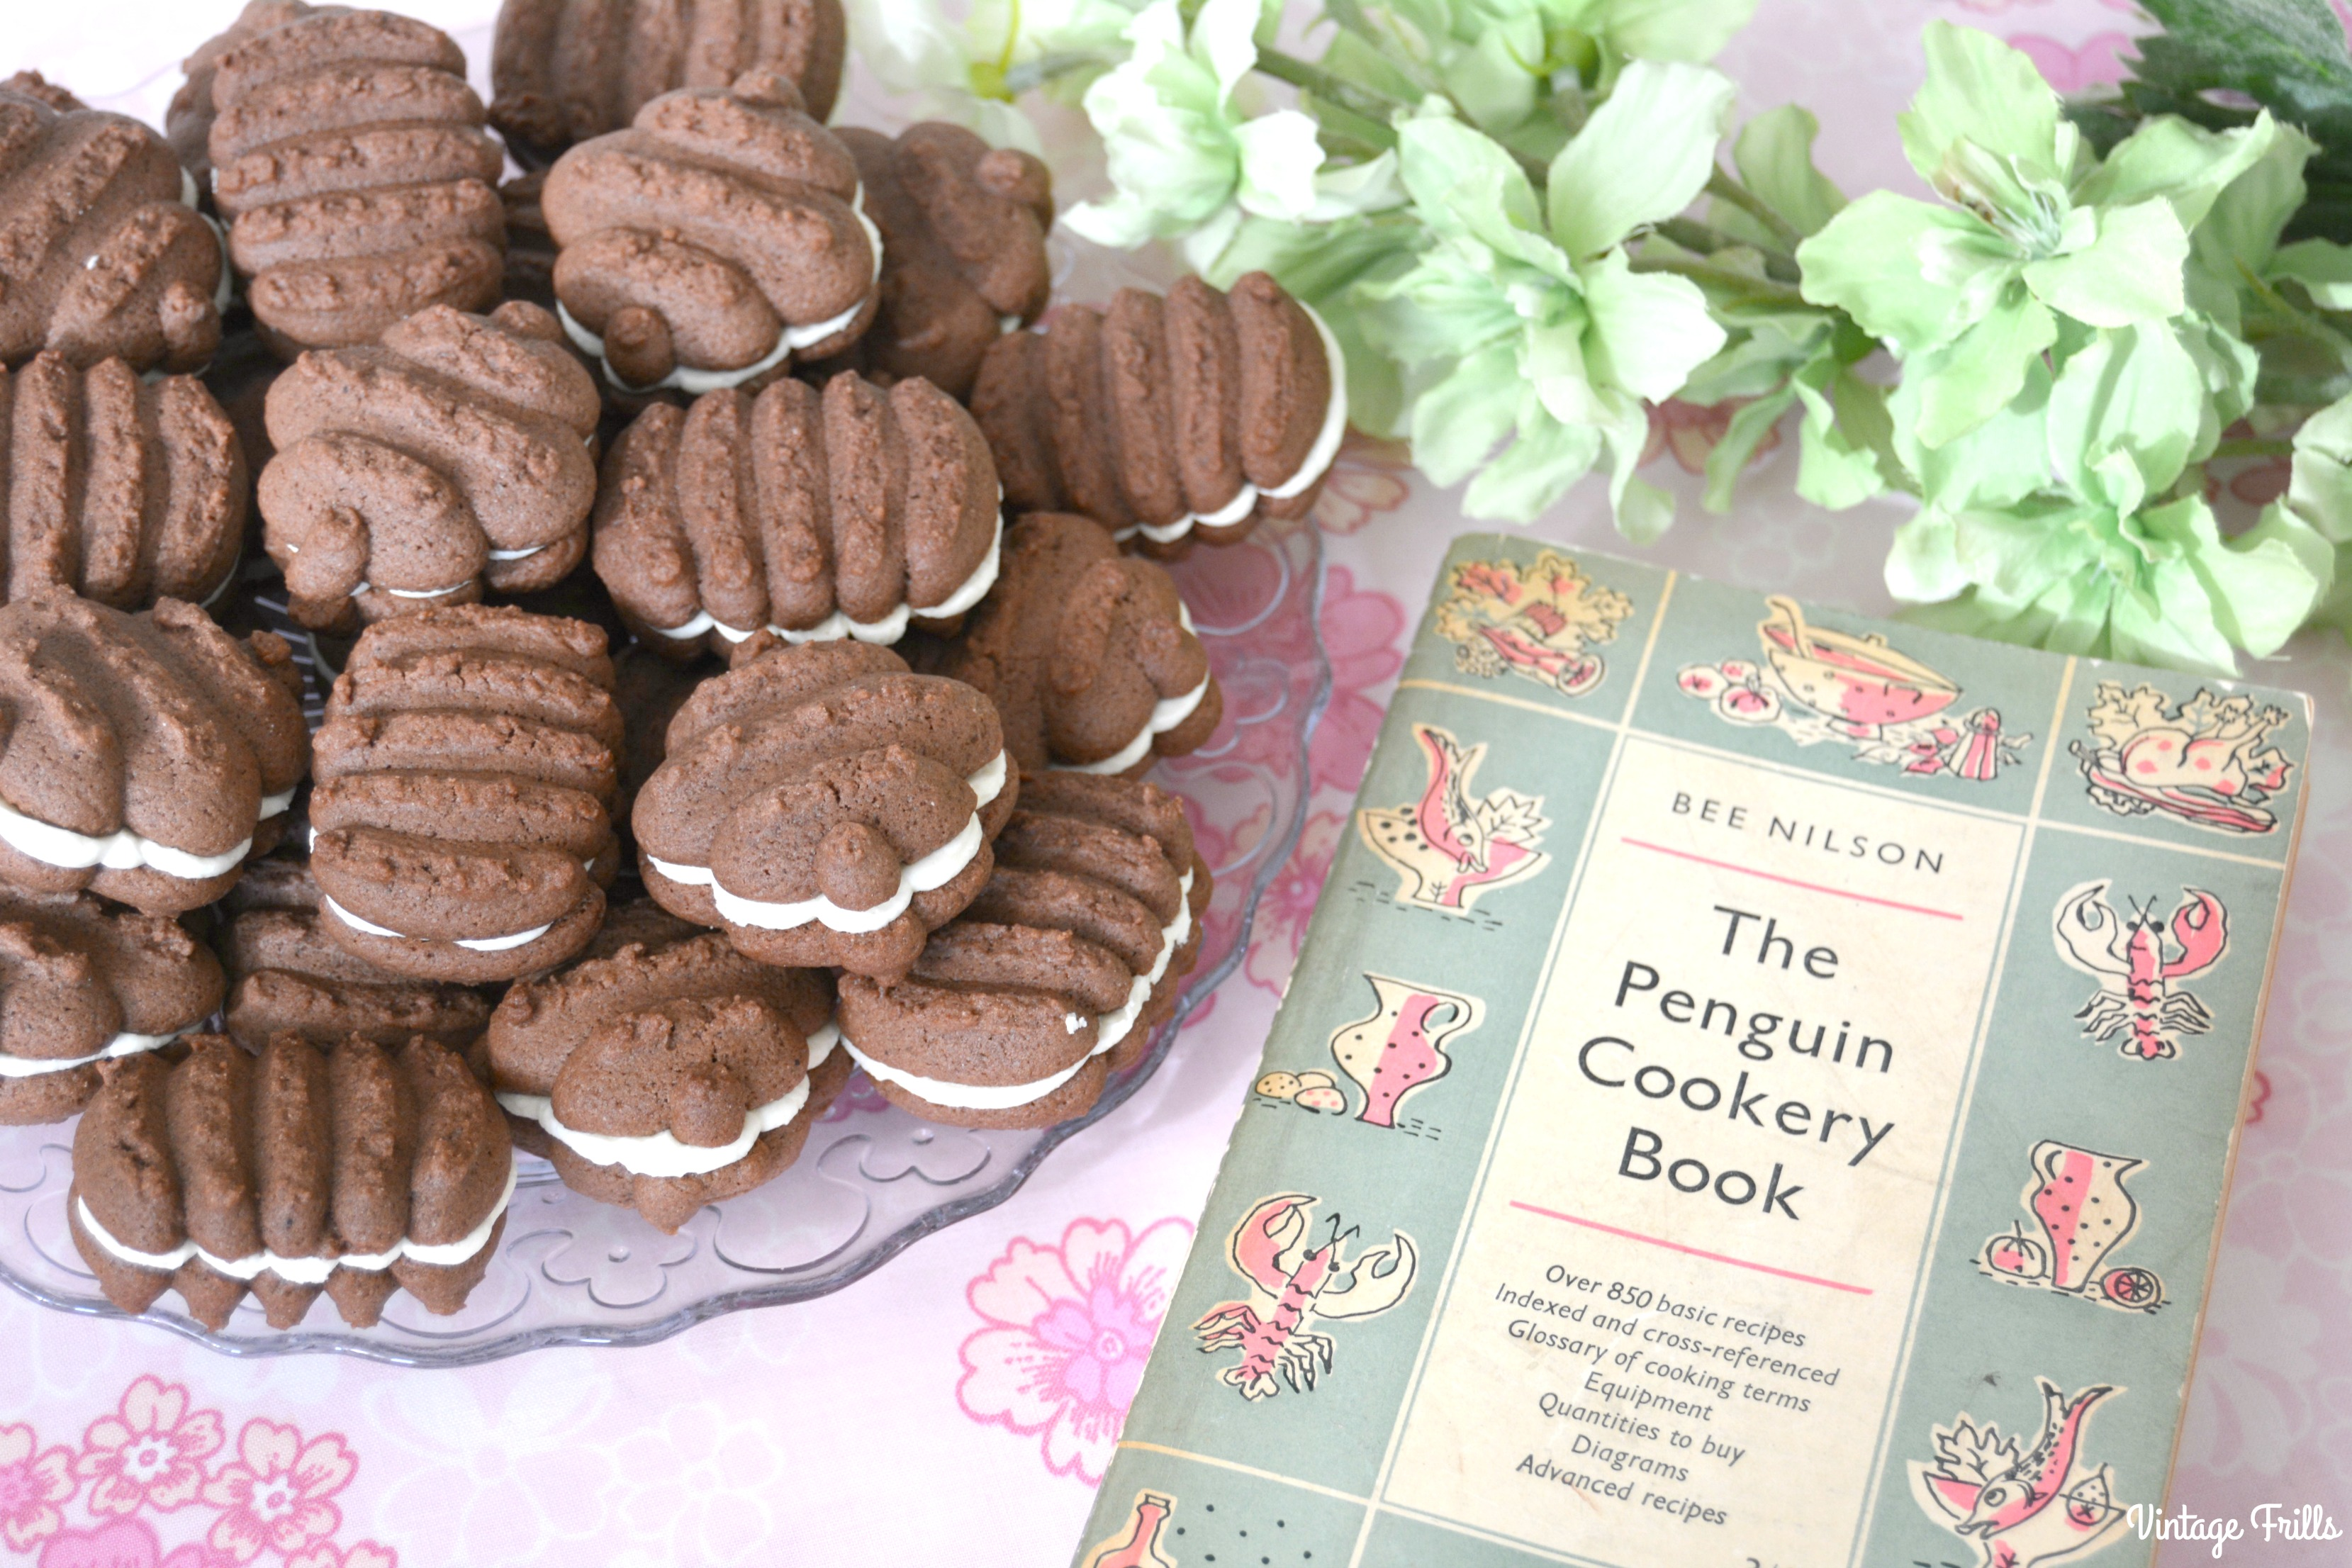 Chocolate Biscuits With A Butter Cream Filling From A 1950s Recipe Vintage Frills